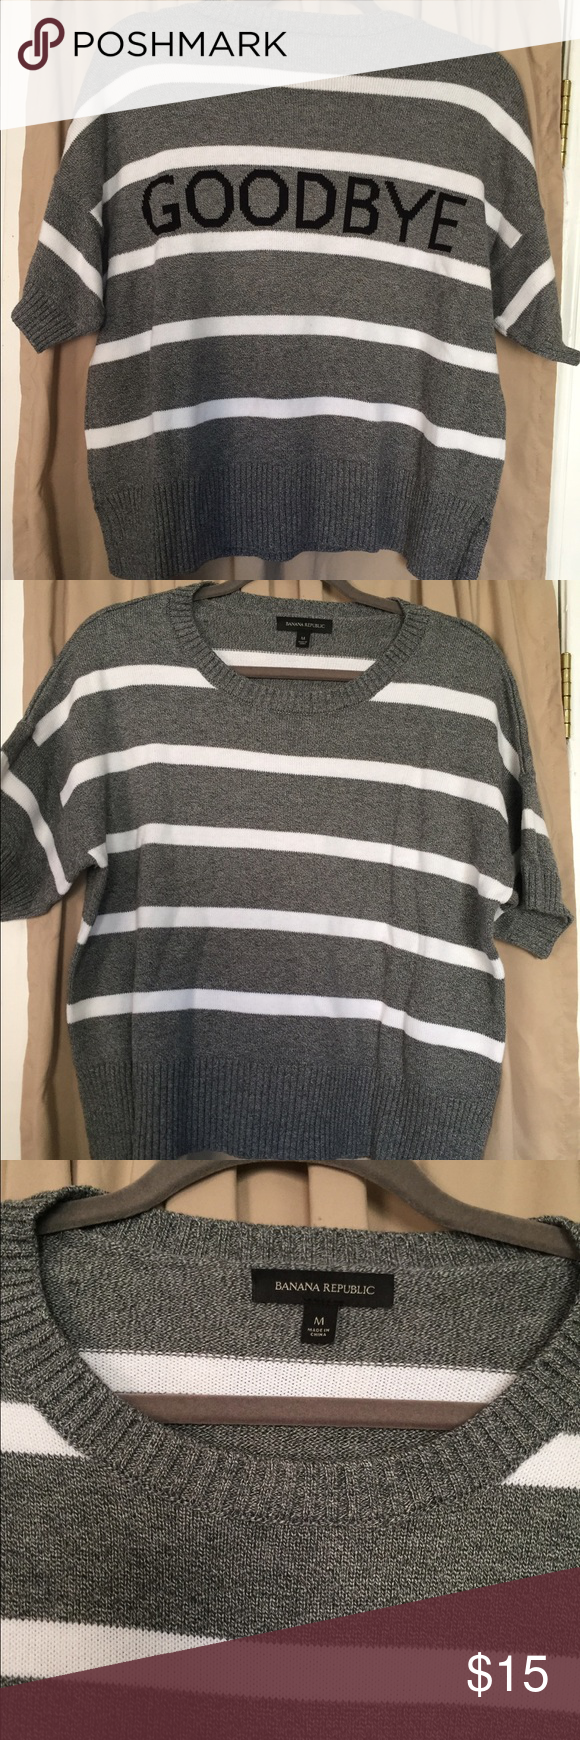 Banana Republic sweater Short sleeve sweater. Only worn once. Great condition. Super comfy and a great thick material. Sweaters